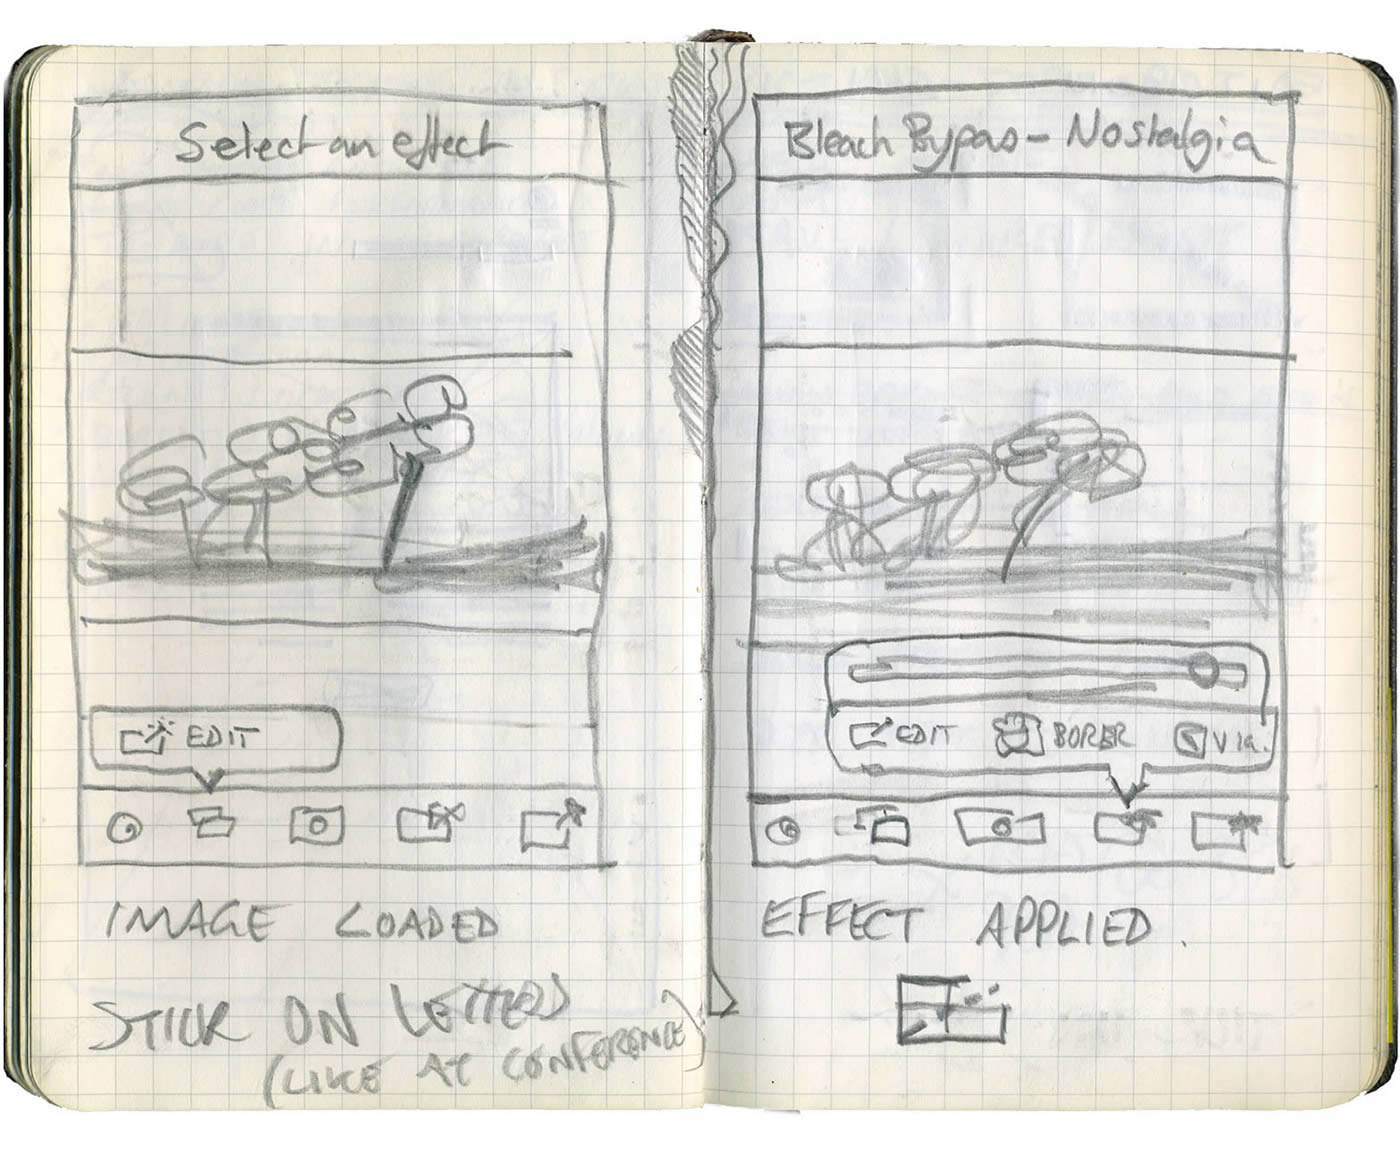 Early sketches of the Bleach Bypass UI